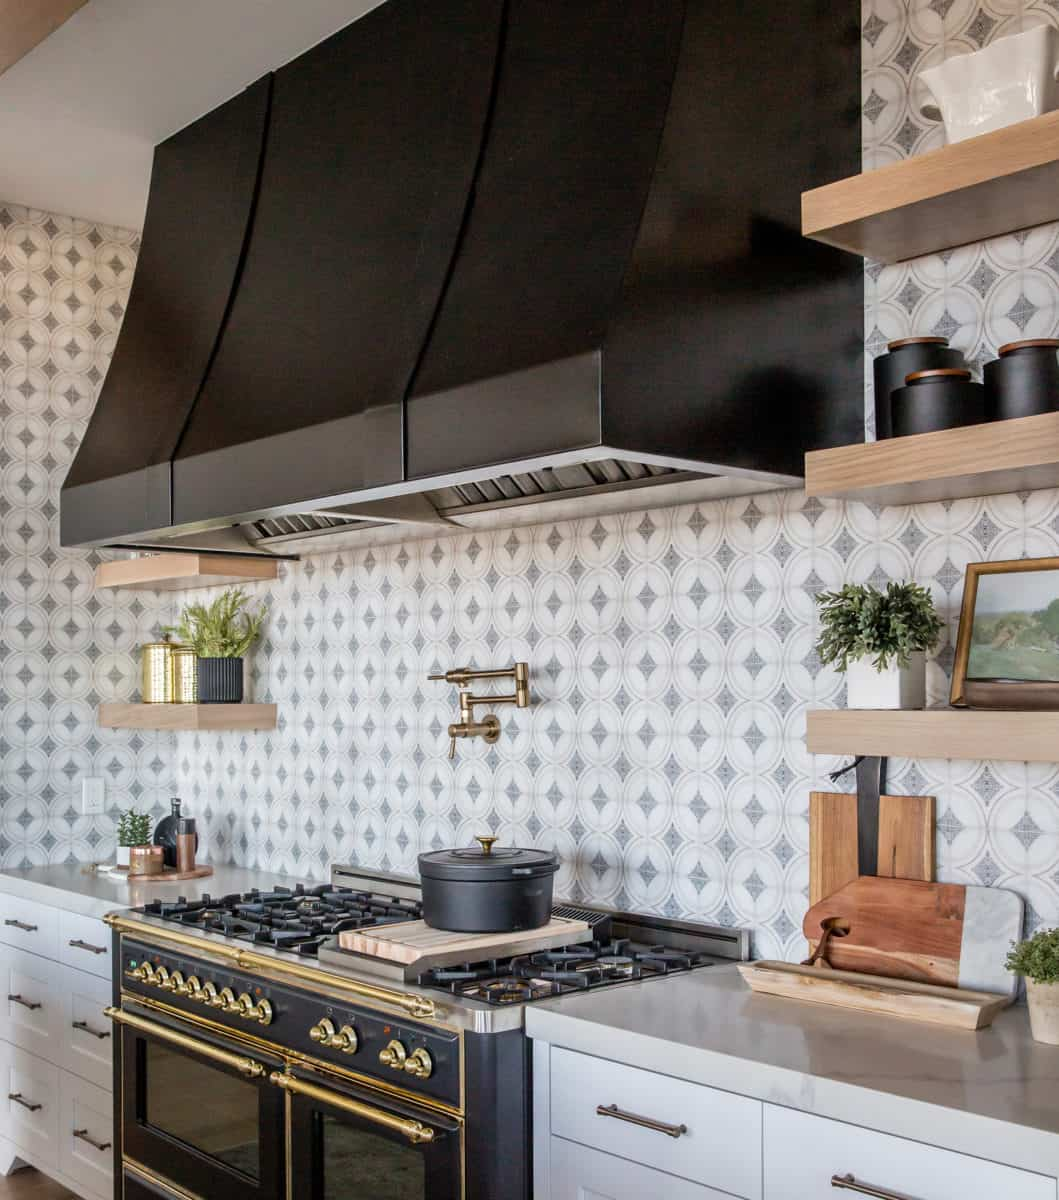 Modern farmhouse kitchen backsplash with ventana pattern on 6x6 honed carrara